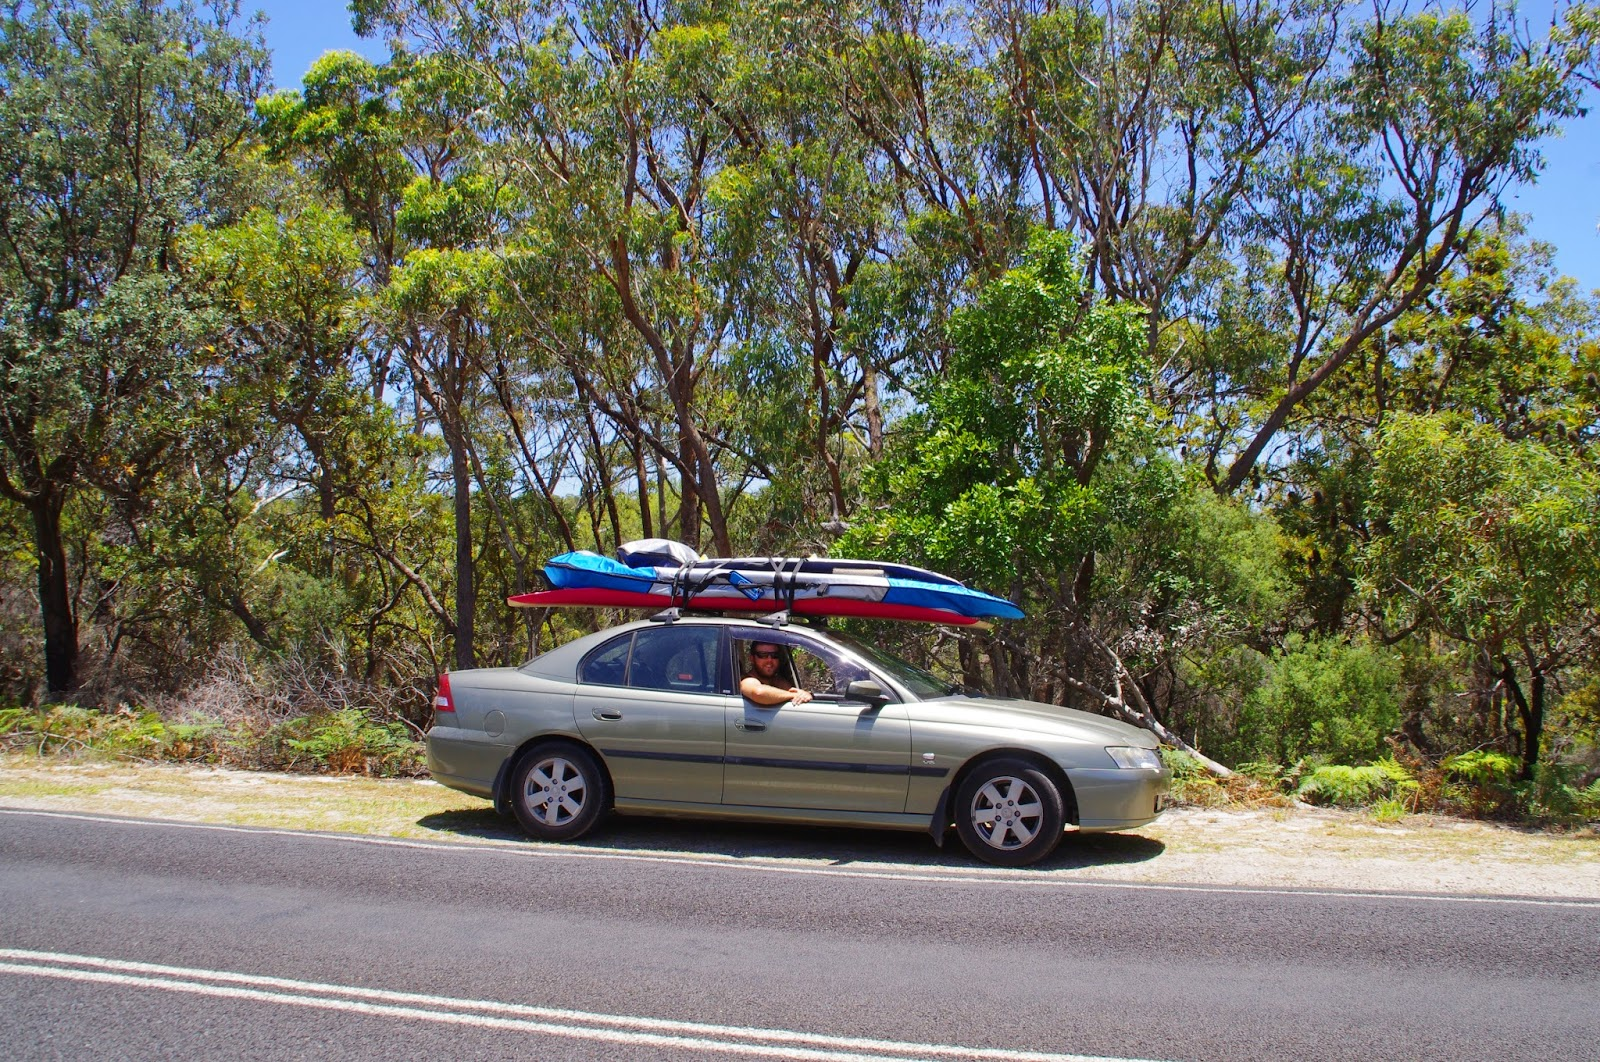 Driving around Stradbroke Island